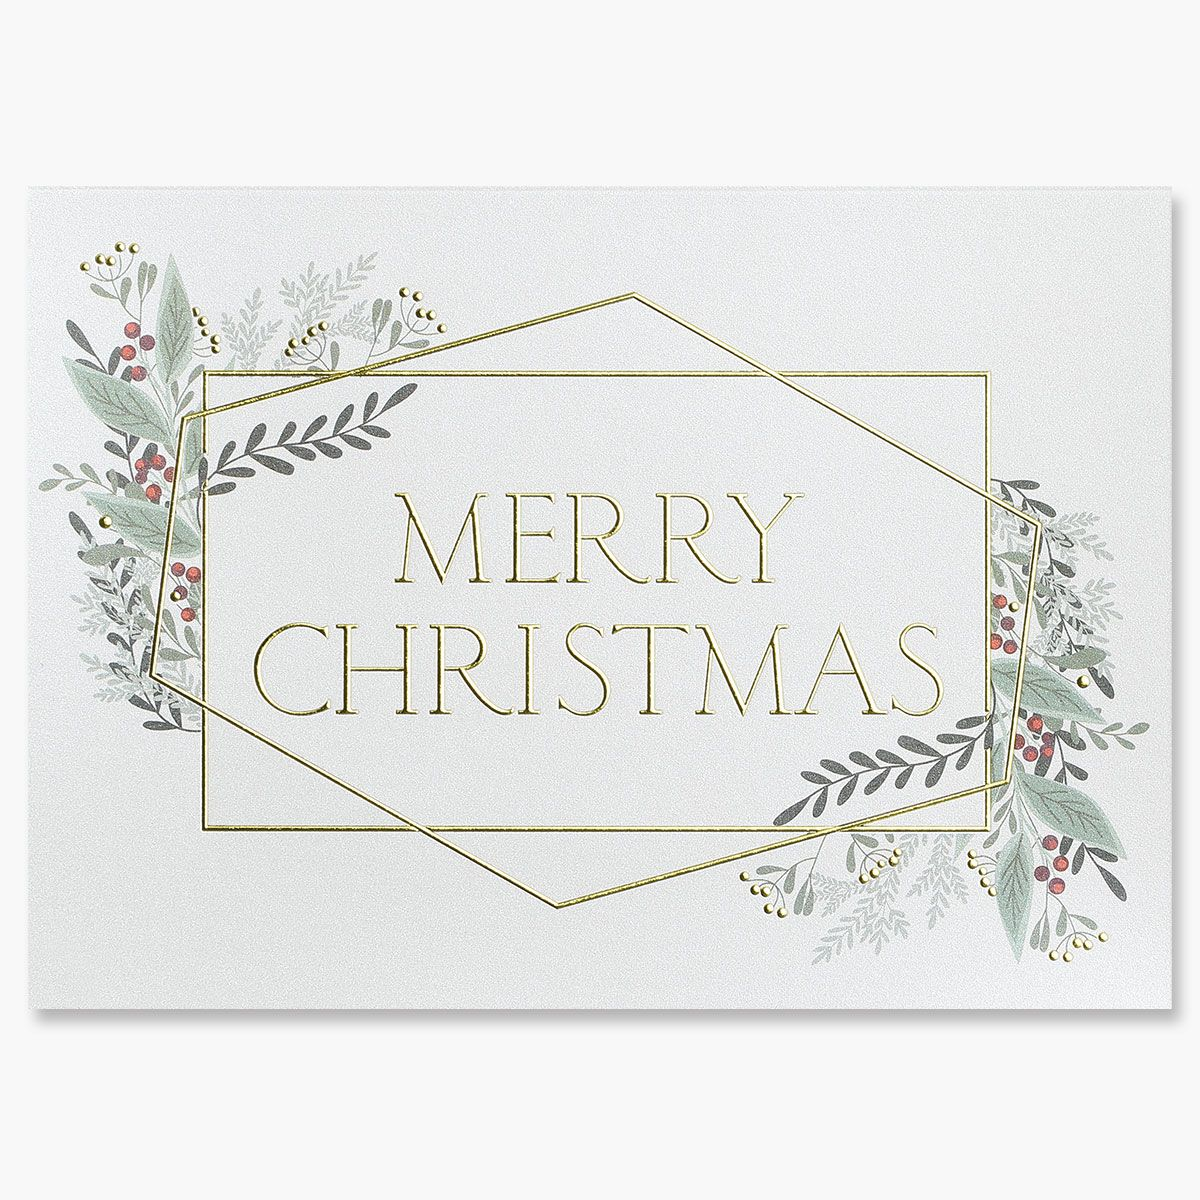 Merry Christmas Lines Greeting Card